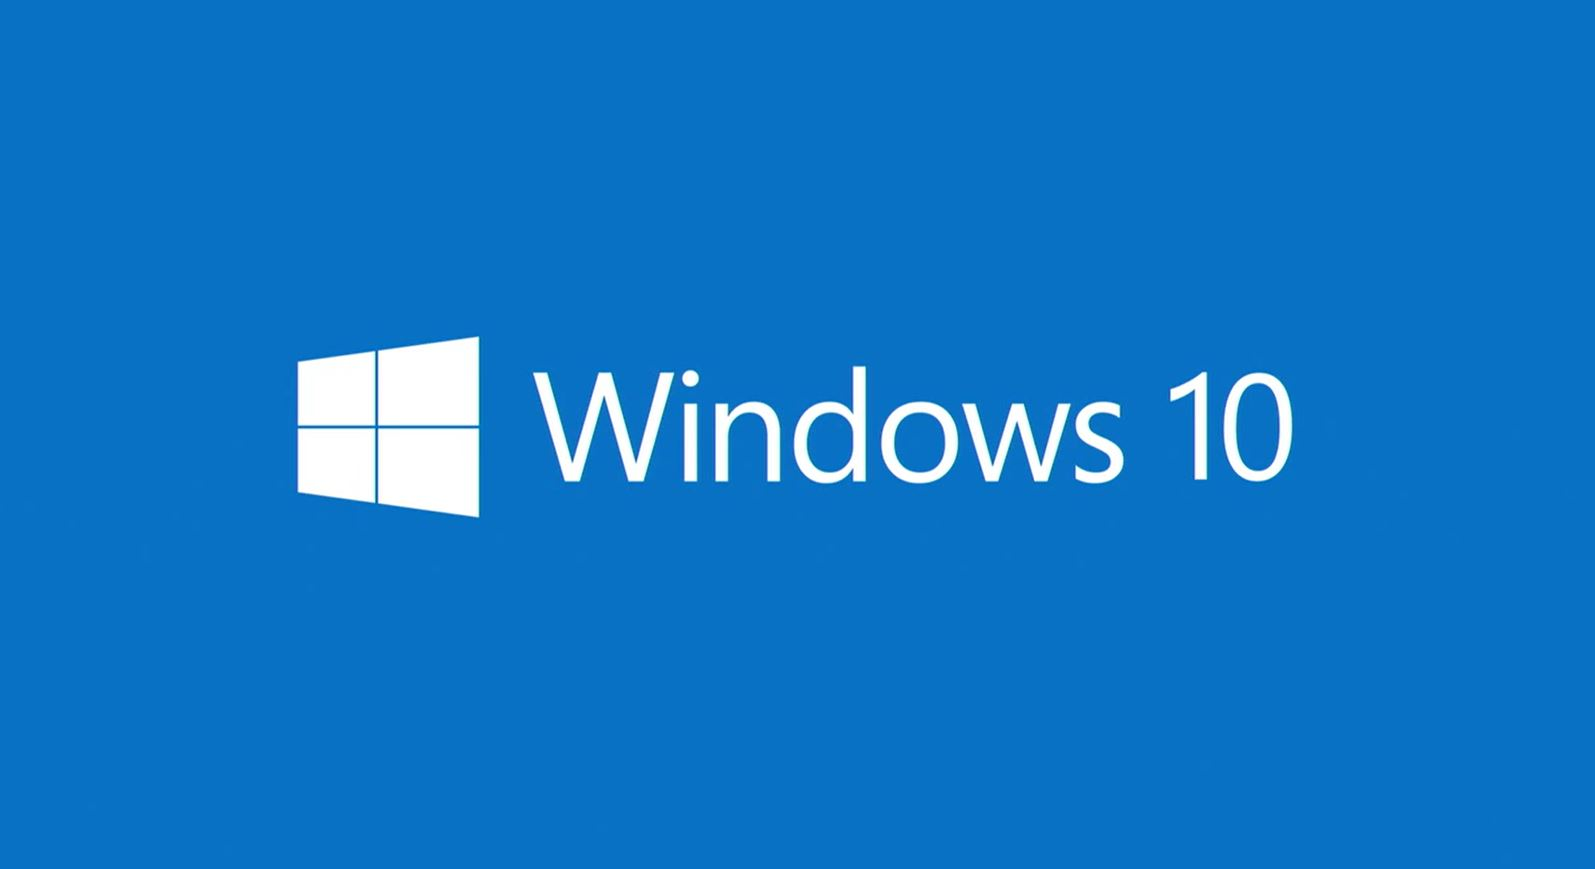 Windows 10: $119 After July 29